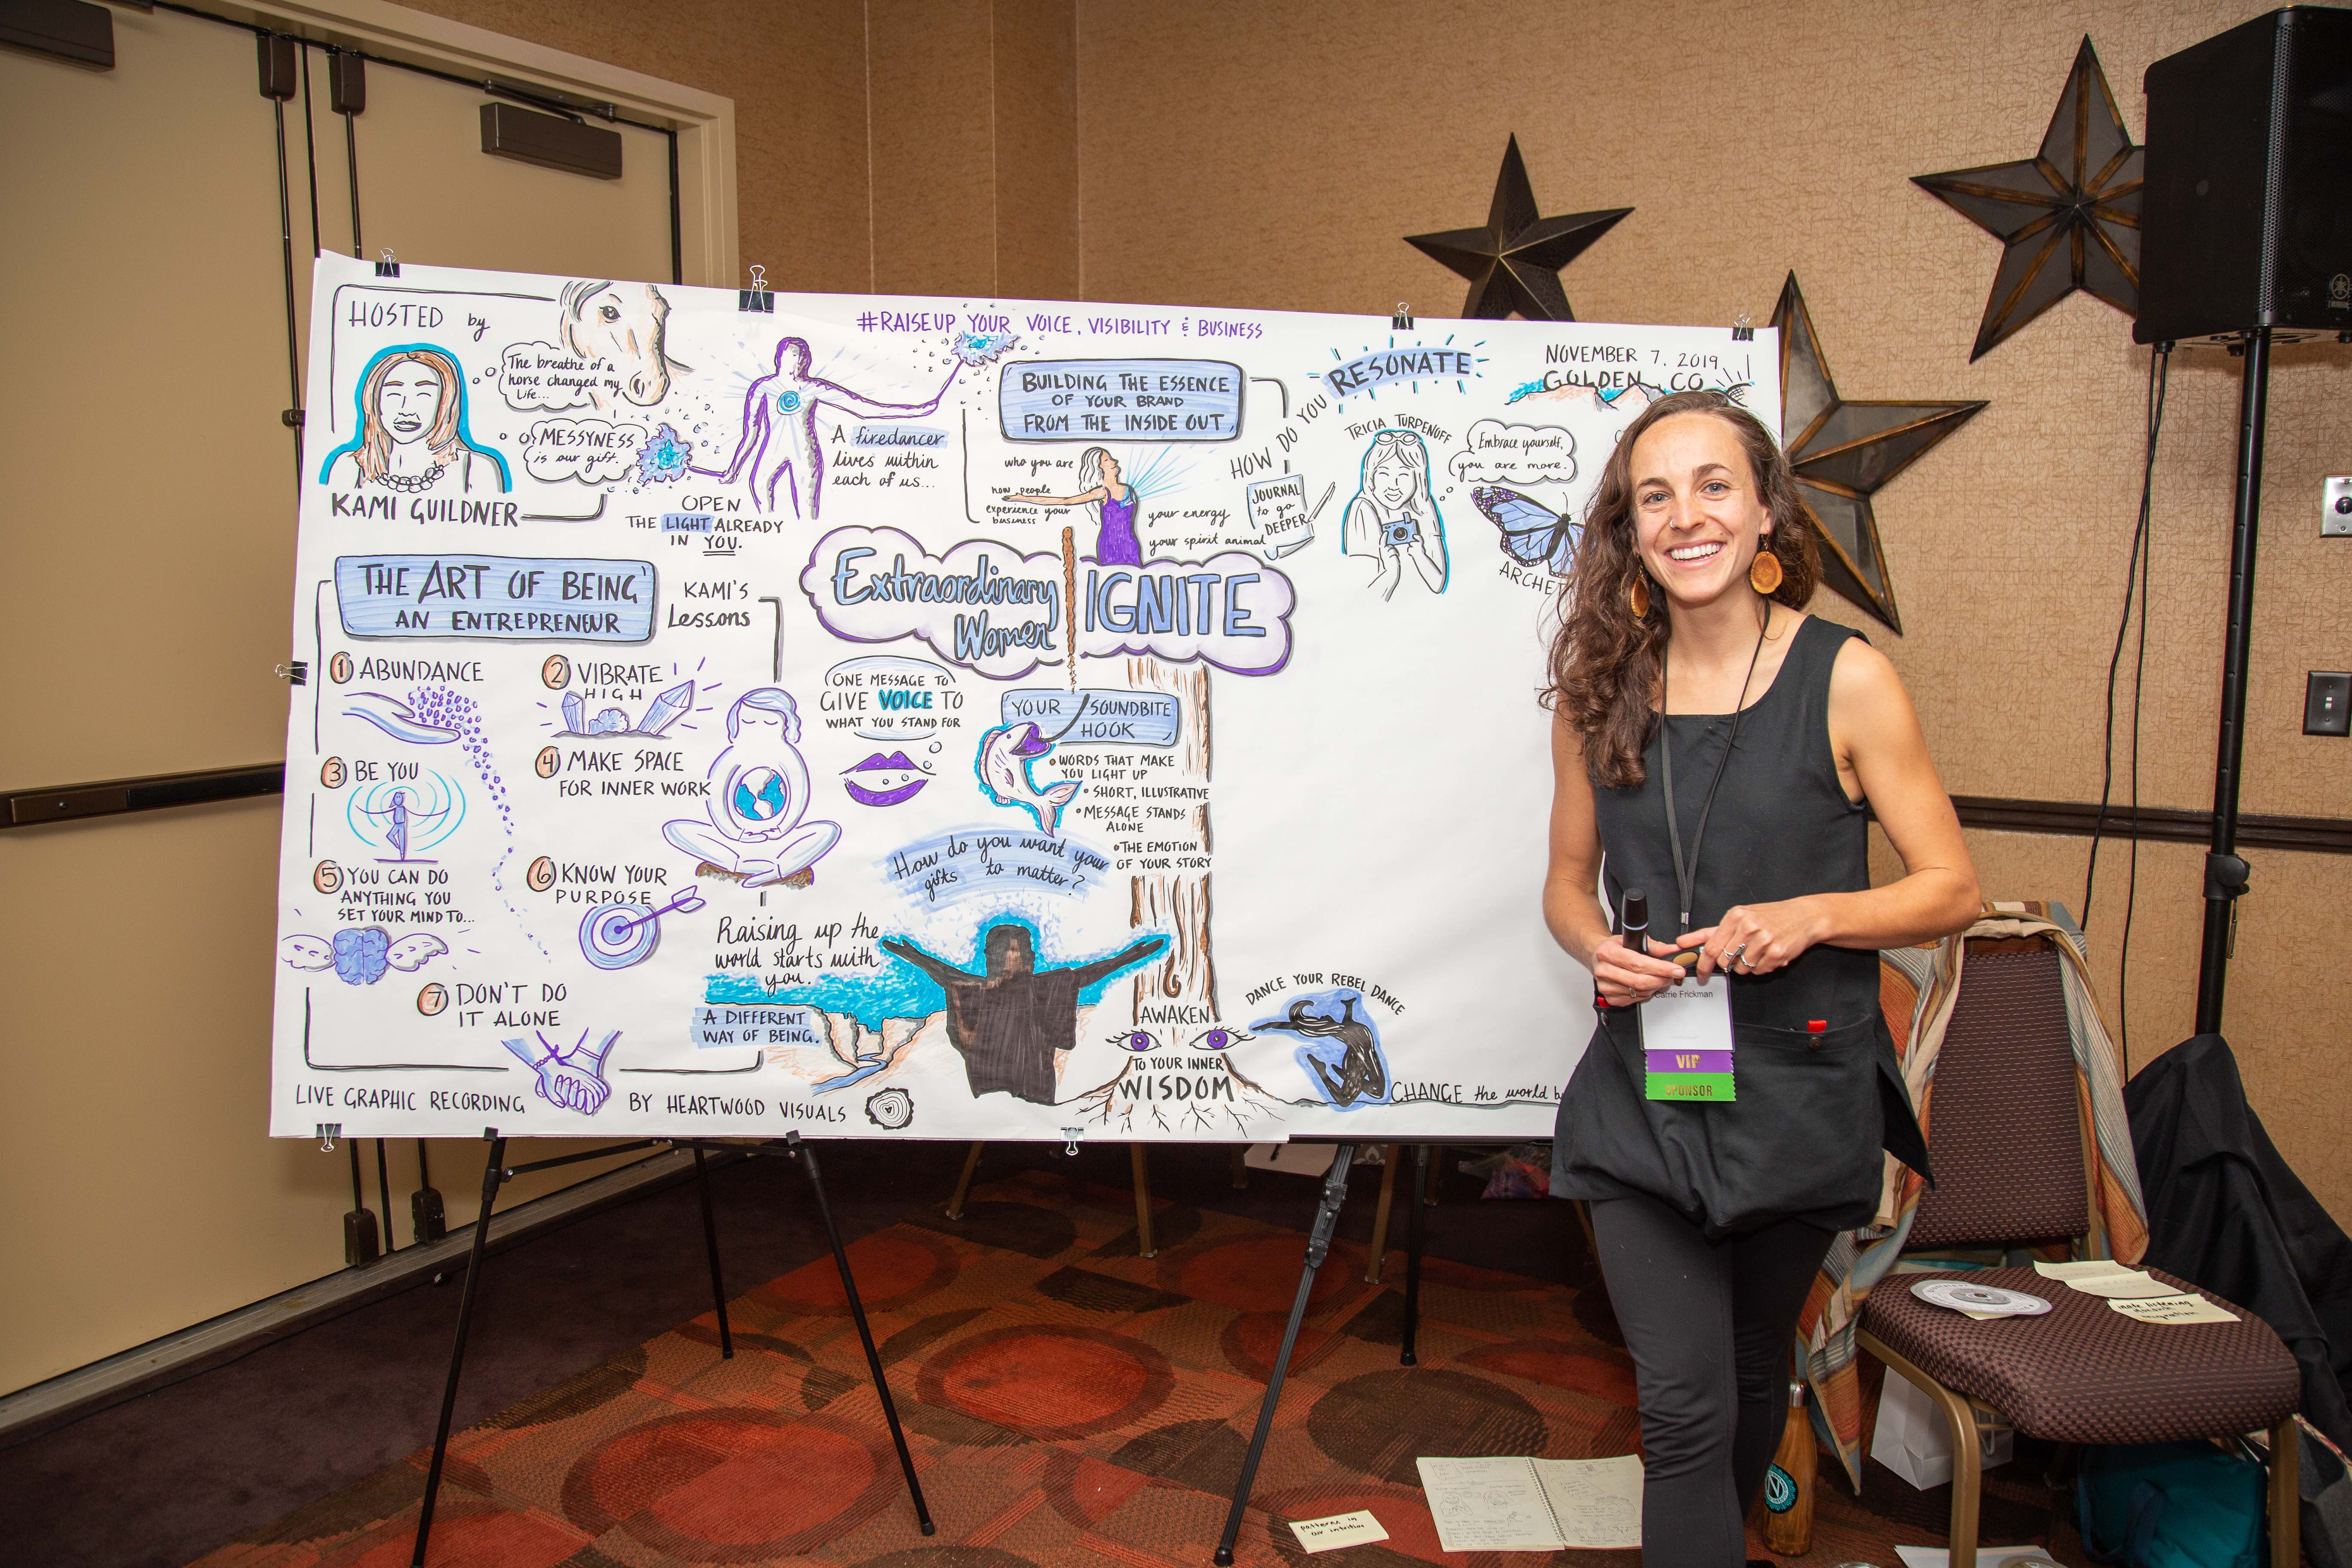 Live graphic recording for the Extraordinary Women Ignite Conference in Golden, CO.